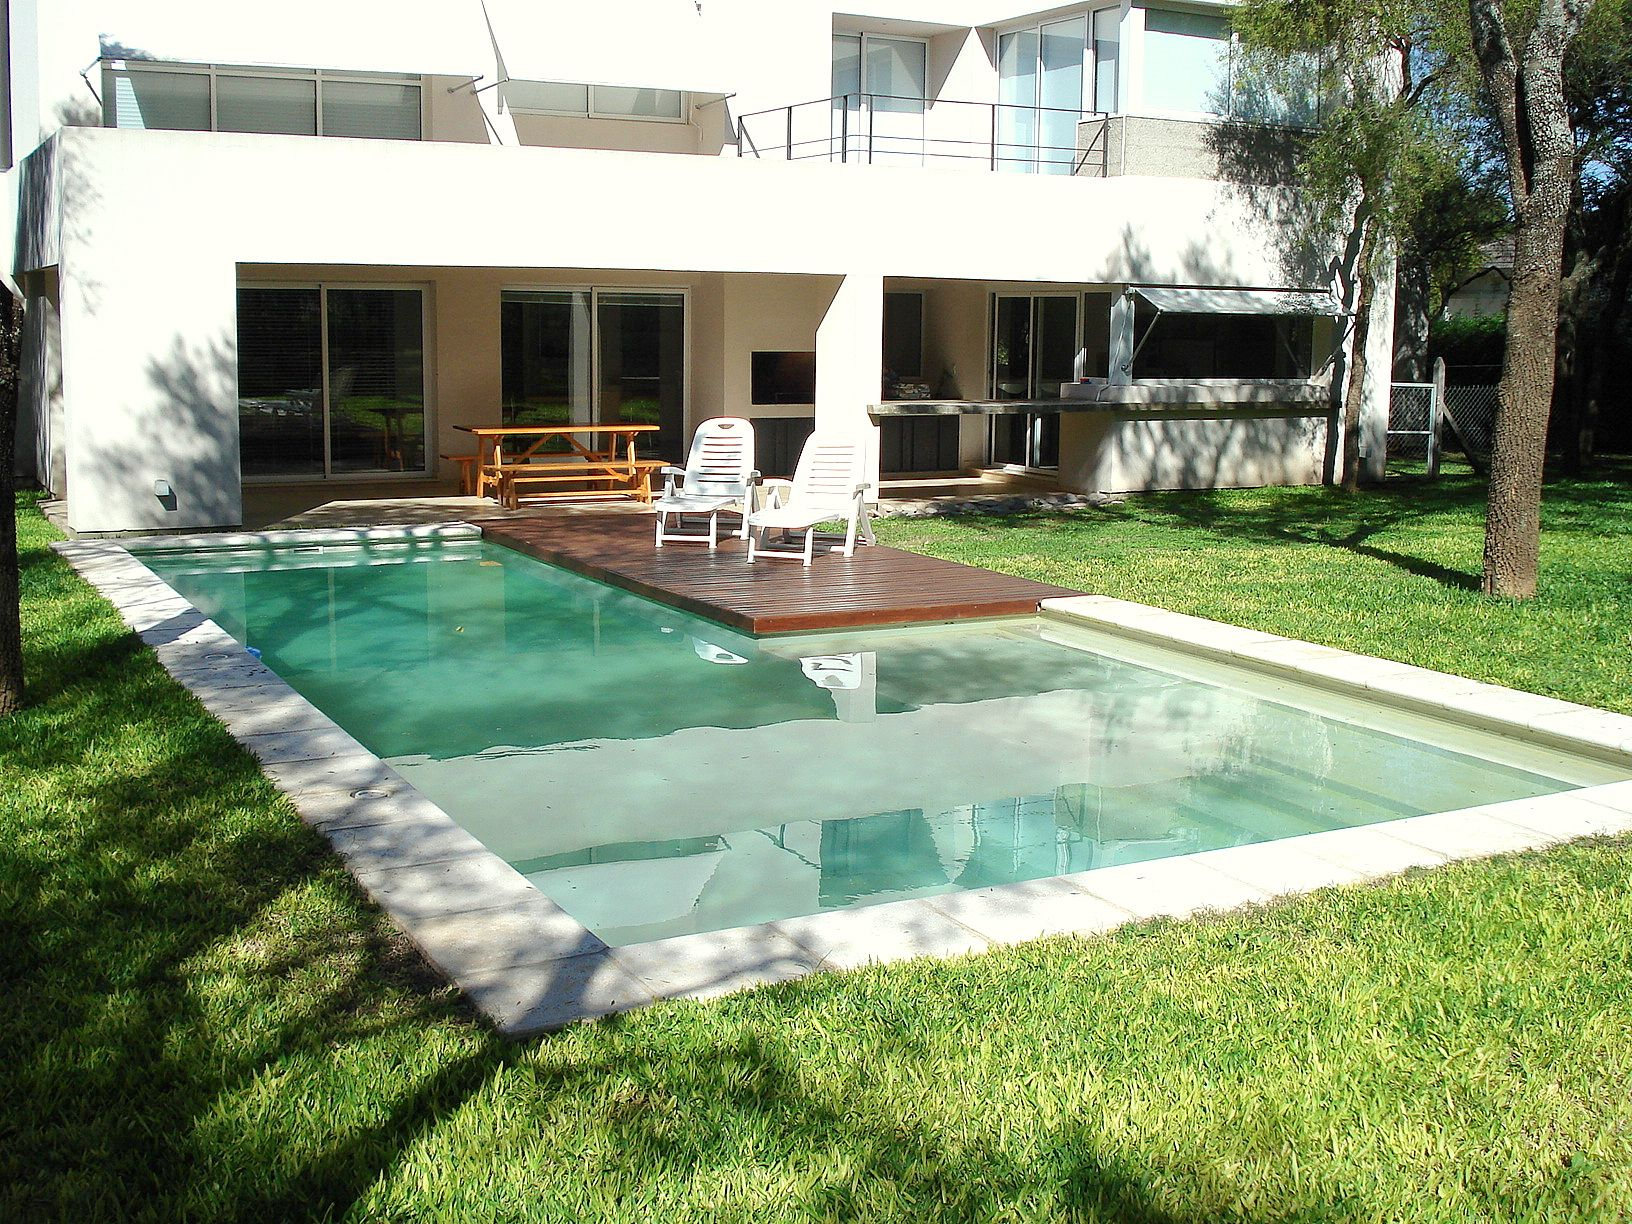 Piscina deck de madera piscina swimmingpool dise o for Piscinas de madera